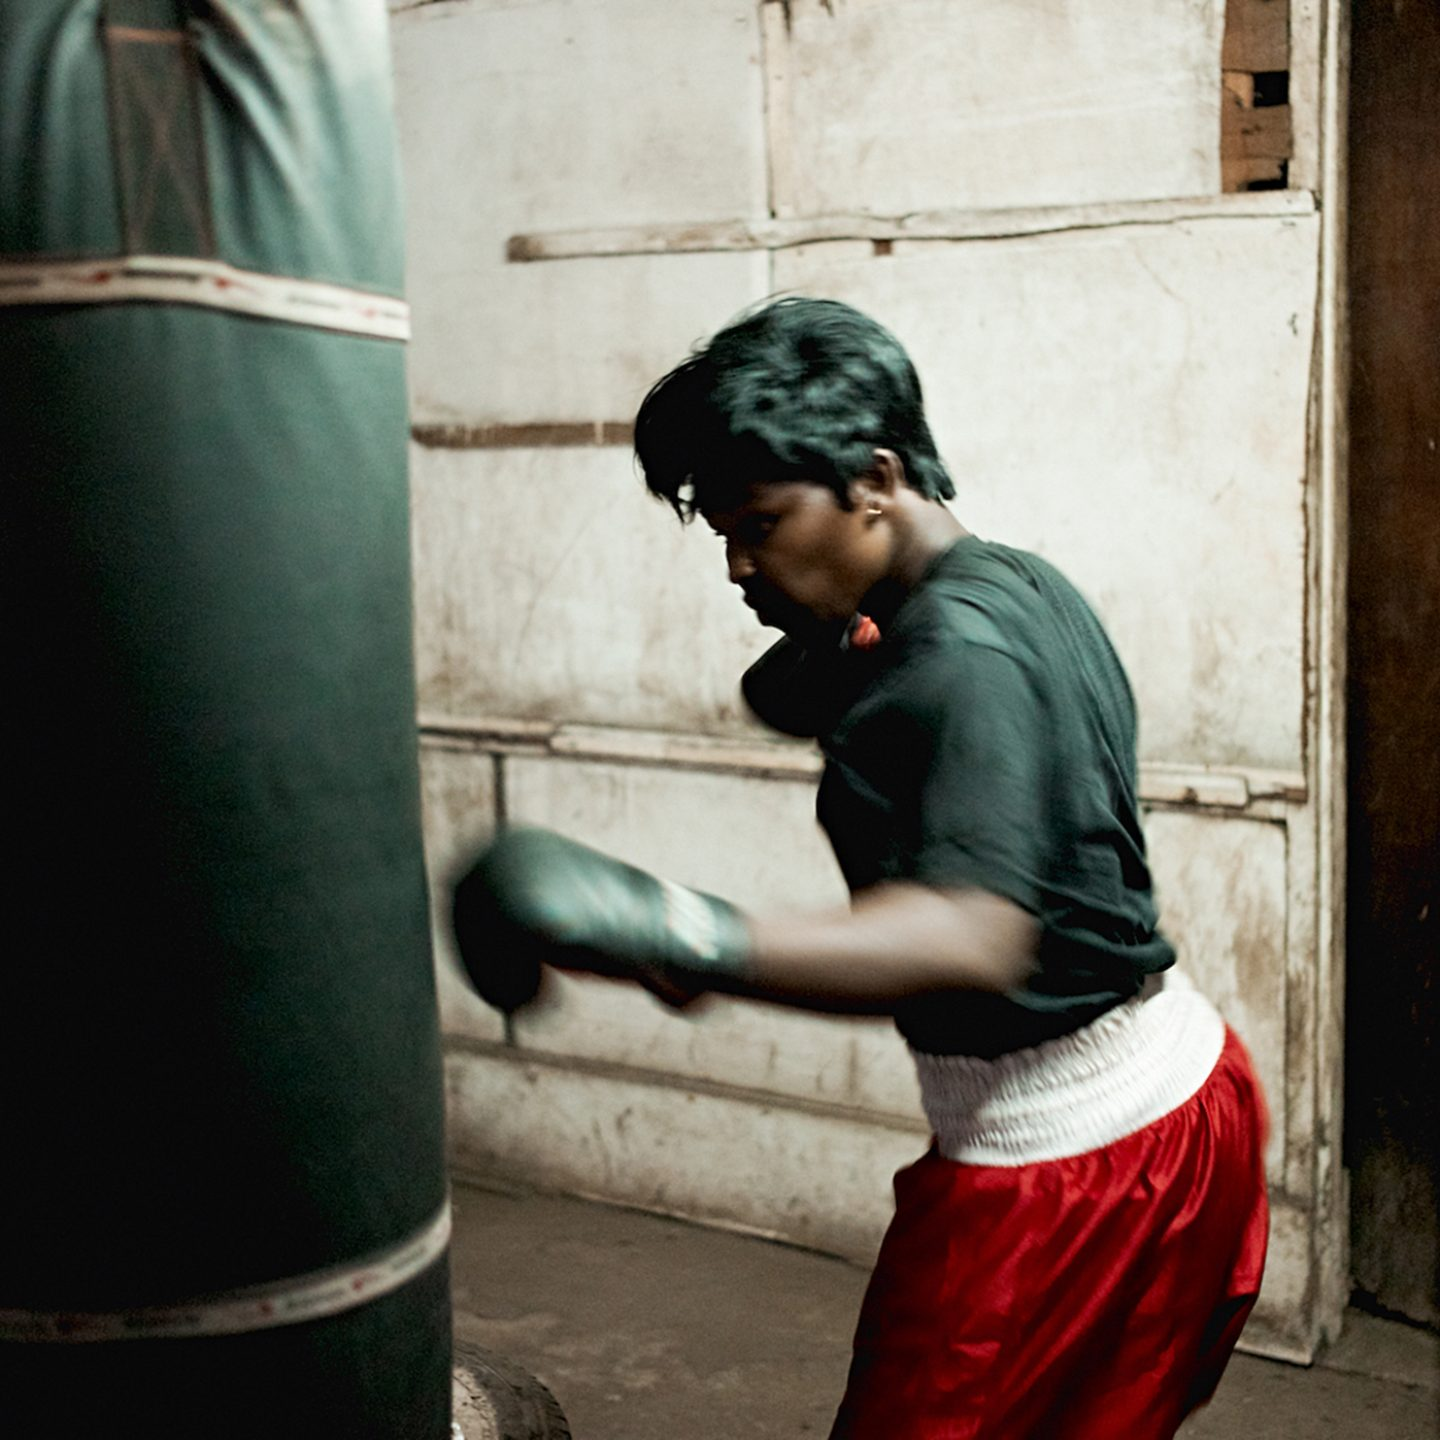 header_photography_boxersinghana_andreasjakwerth_18